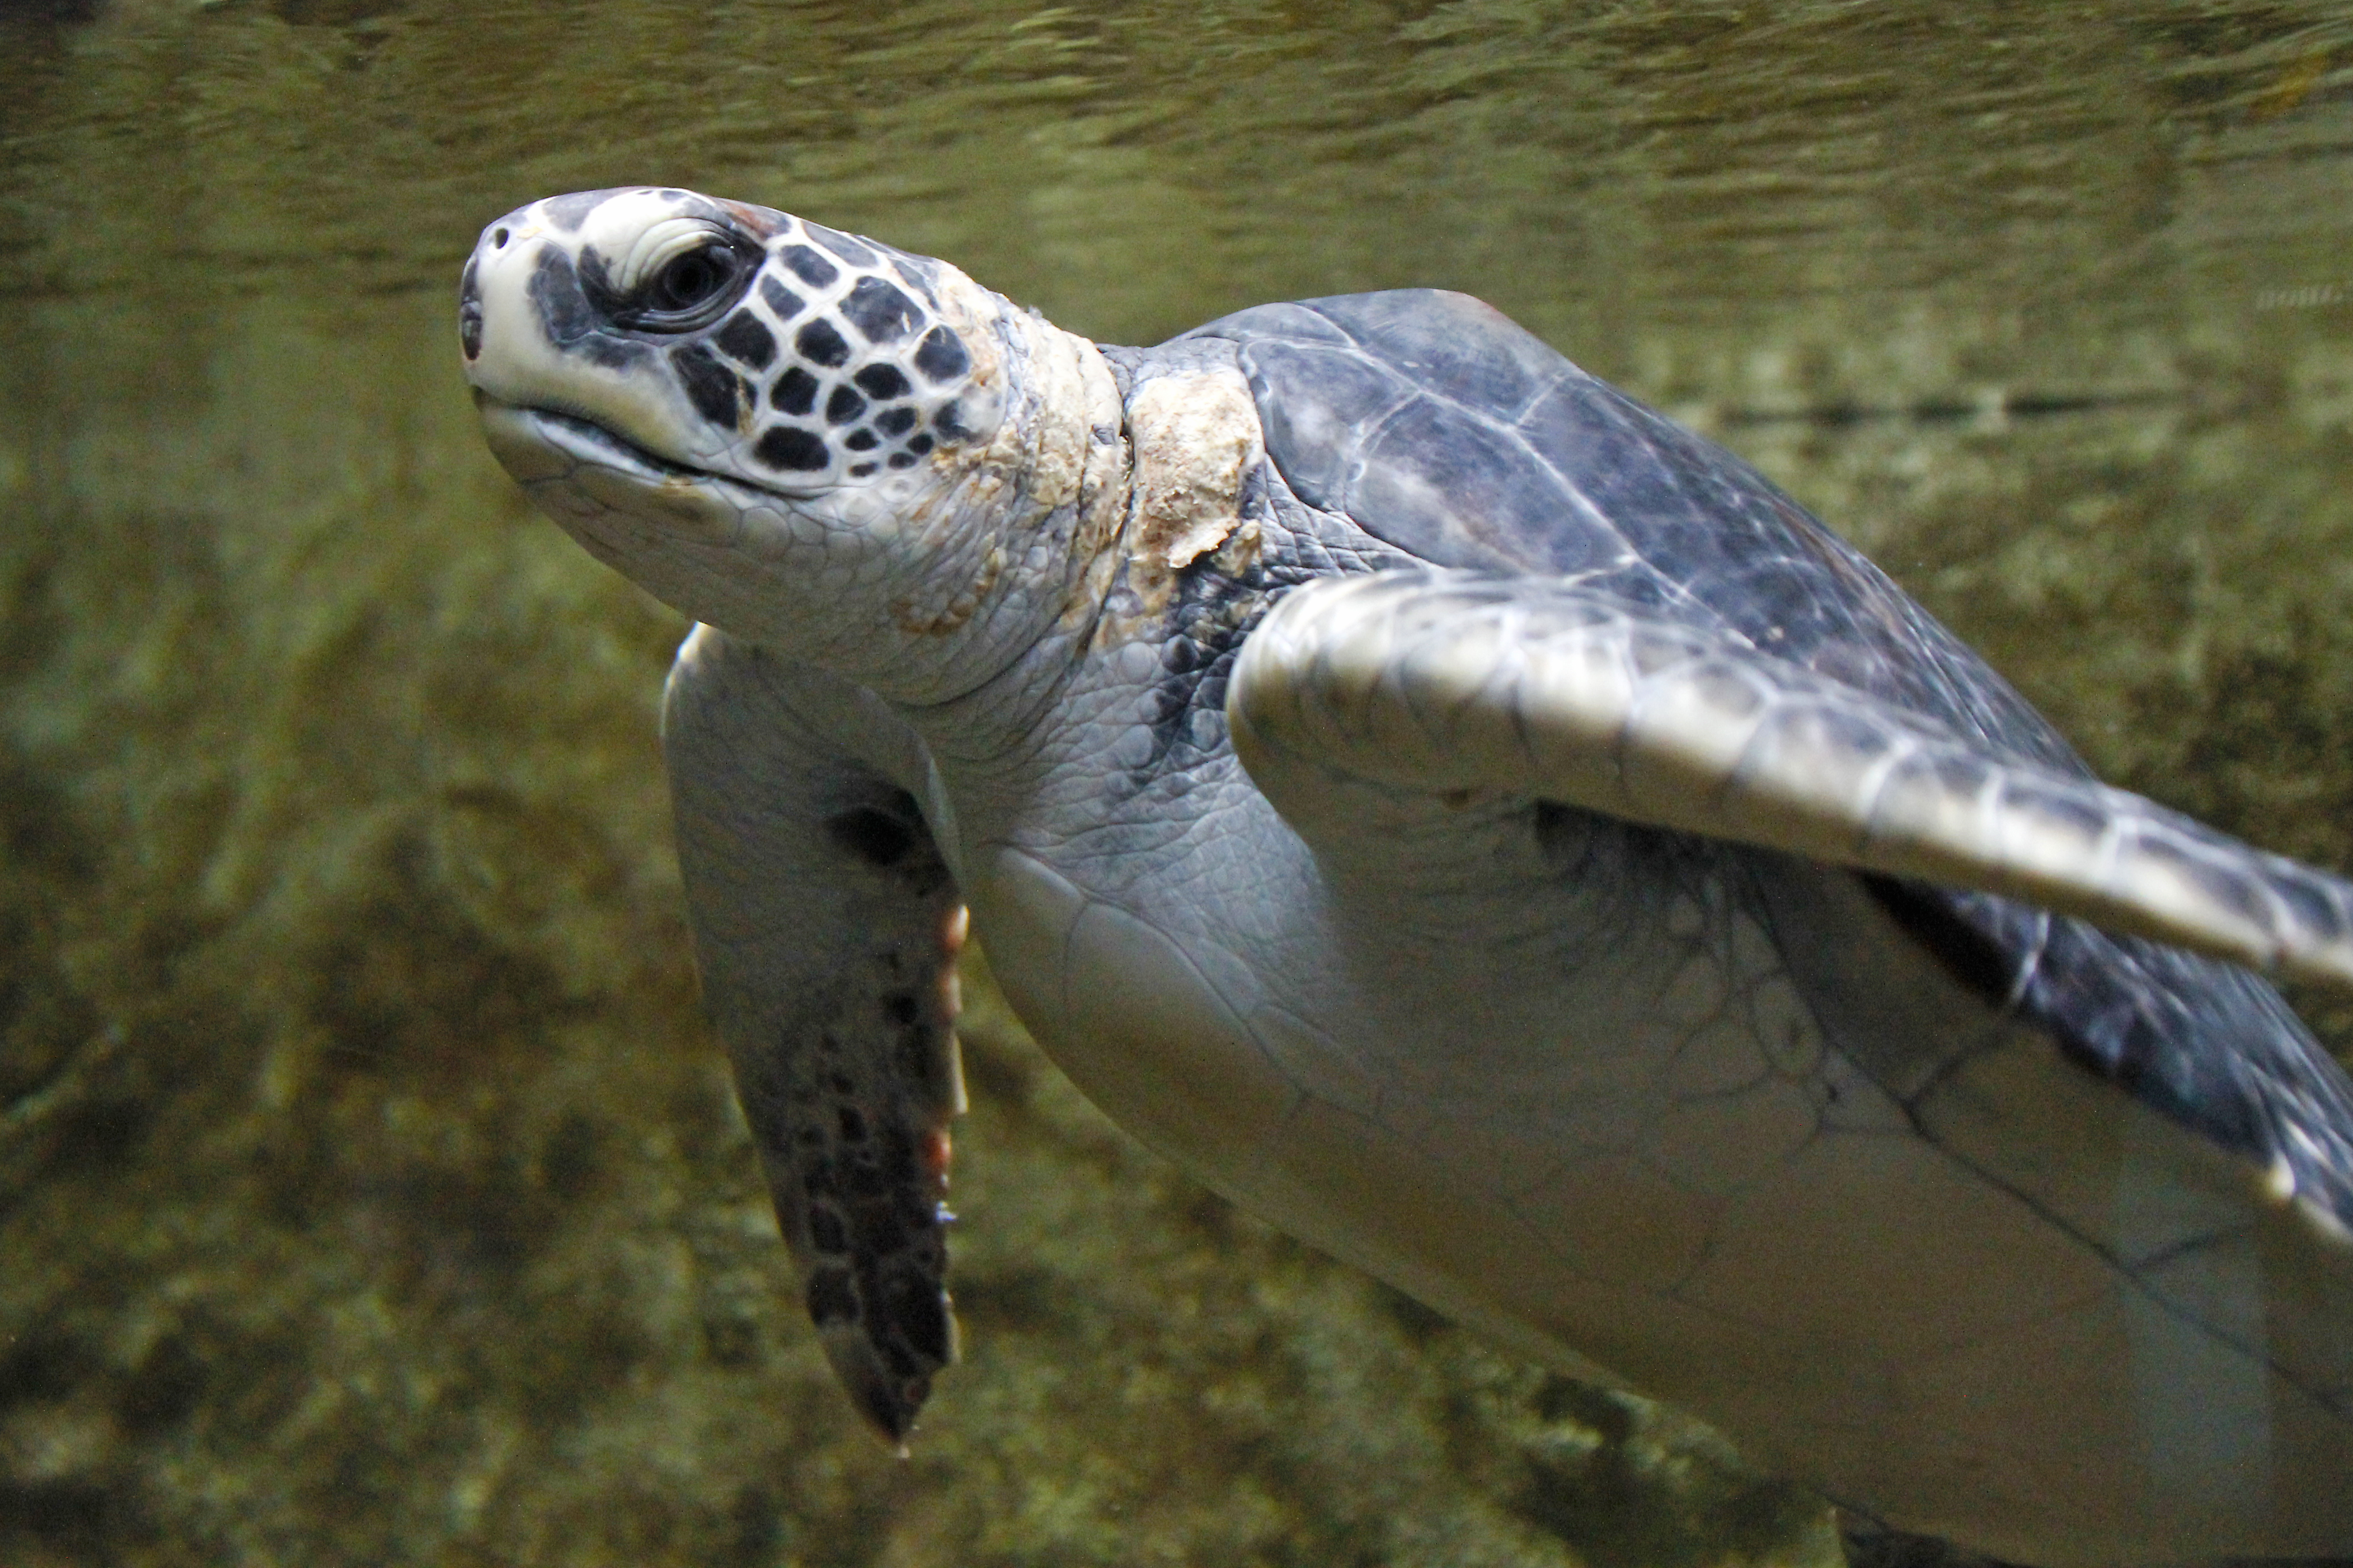 ... 4205 ? 2803 in Brevard County, Florida: Best Sea Turtle Nesting Site